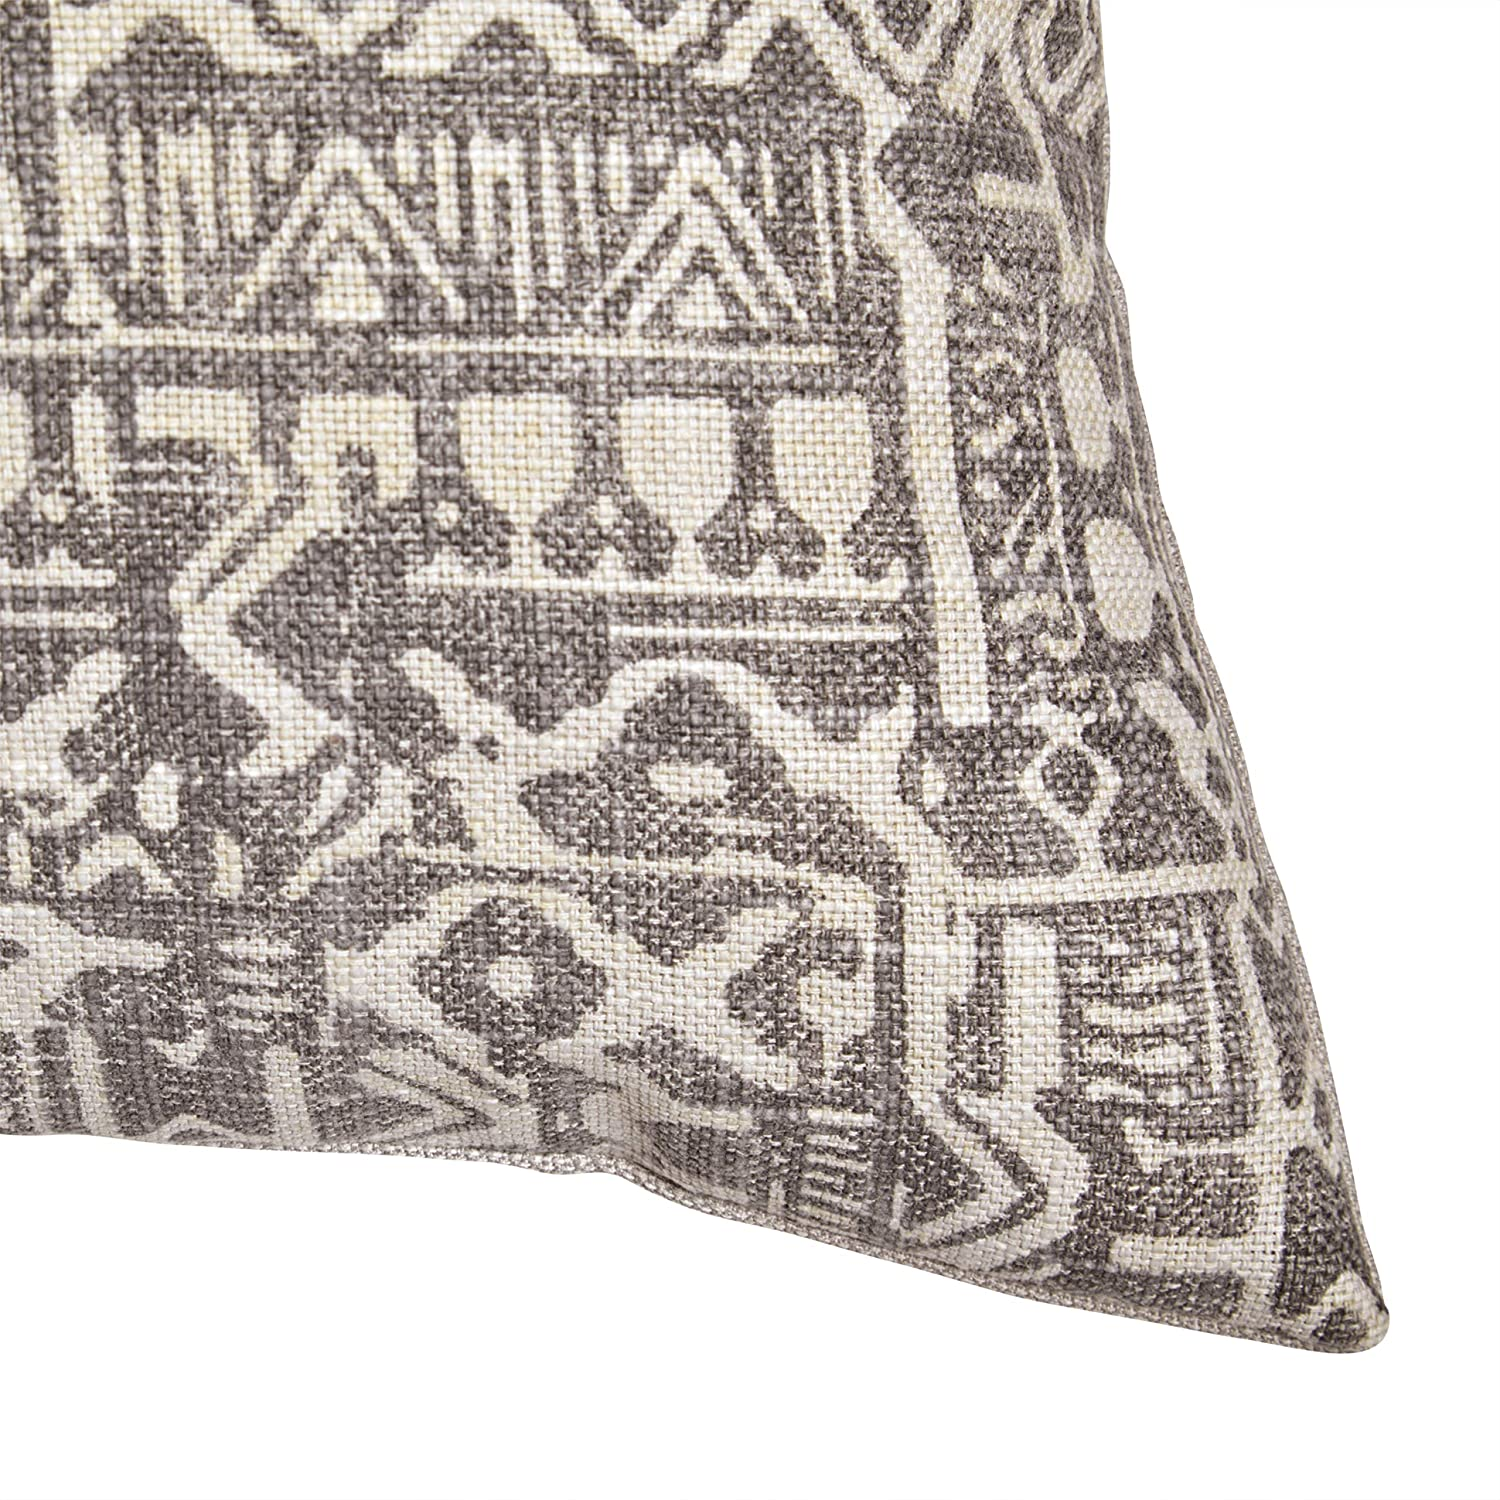 Stone & Beam Casual Global Throw Pillow - 20 x 20 Inch, Charcoal